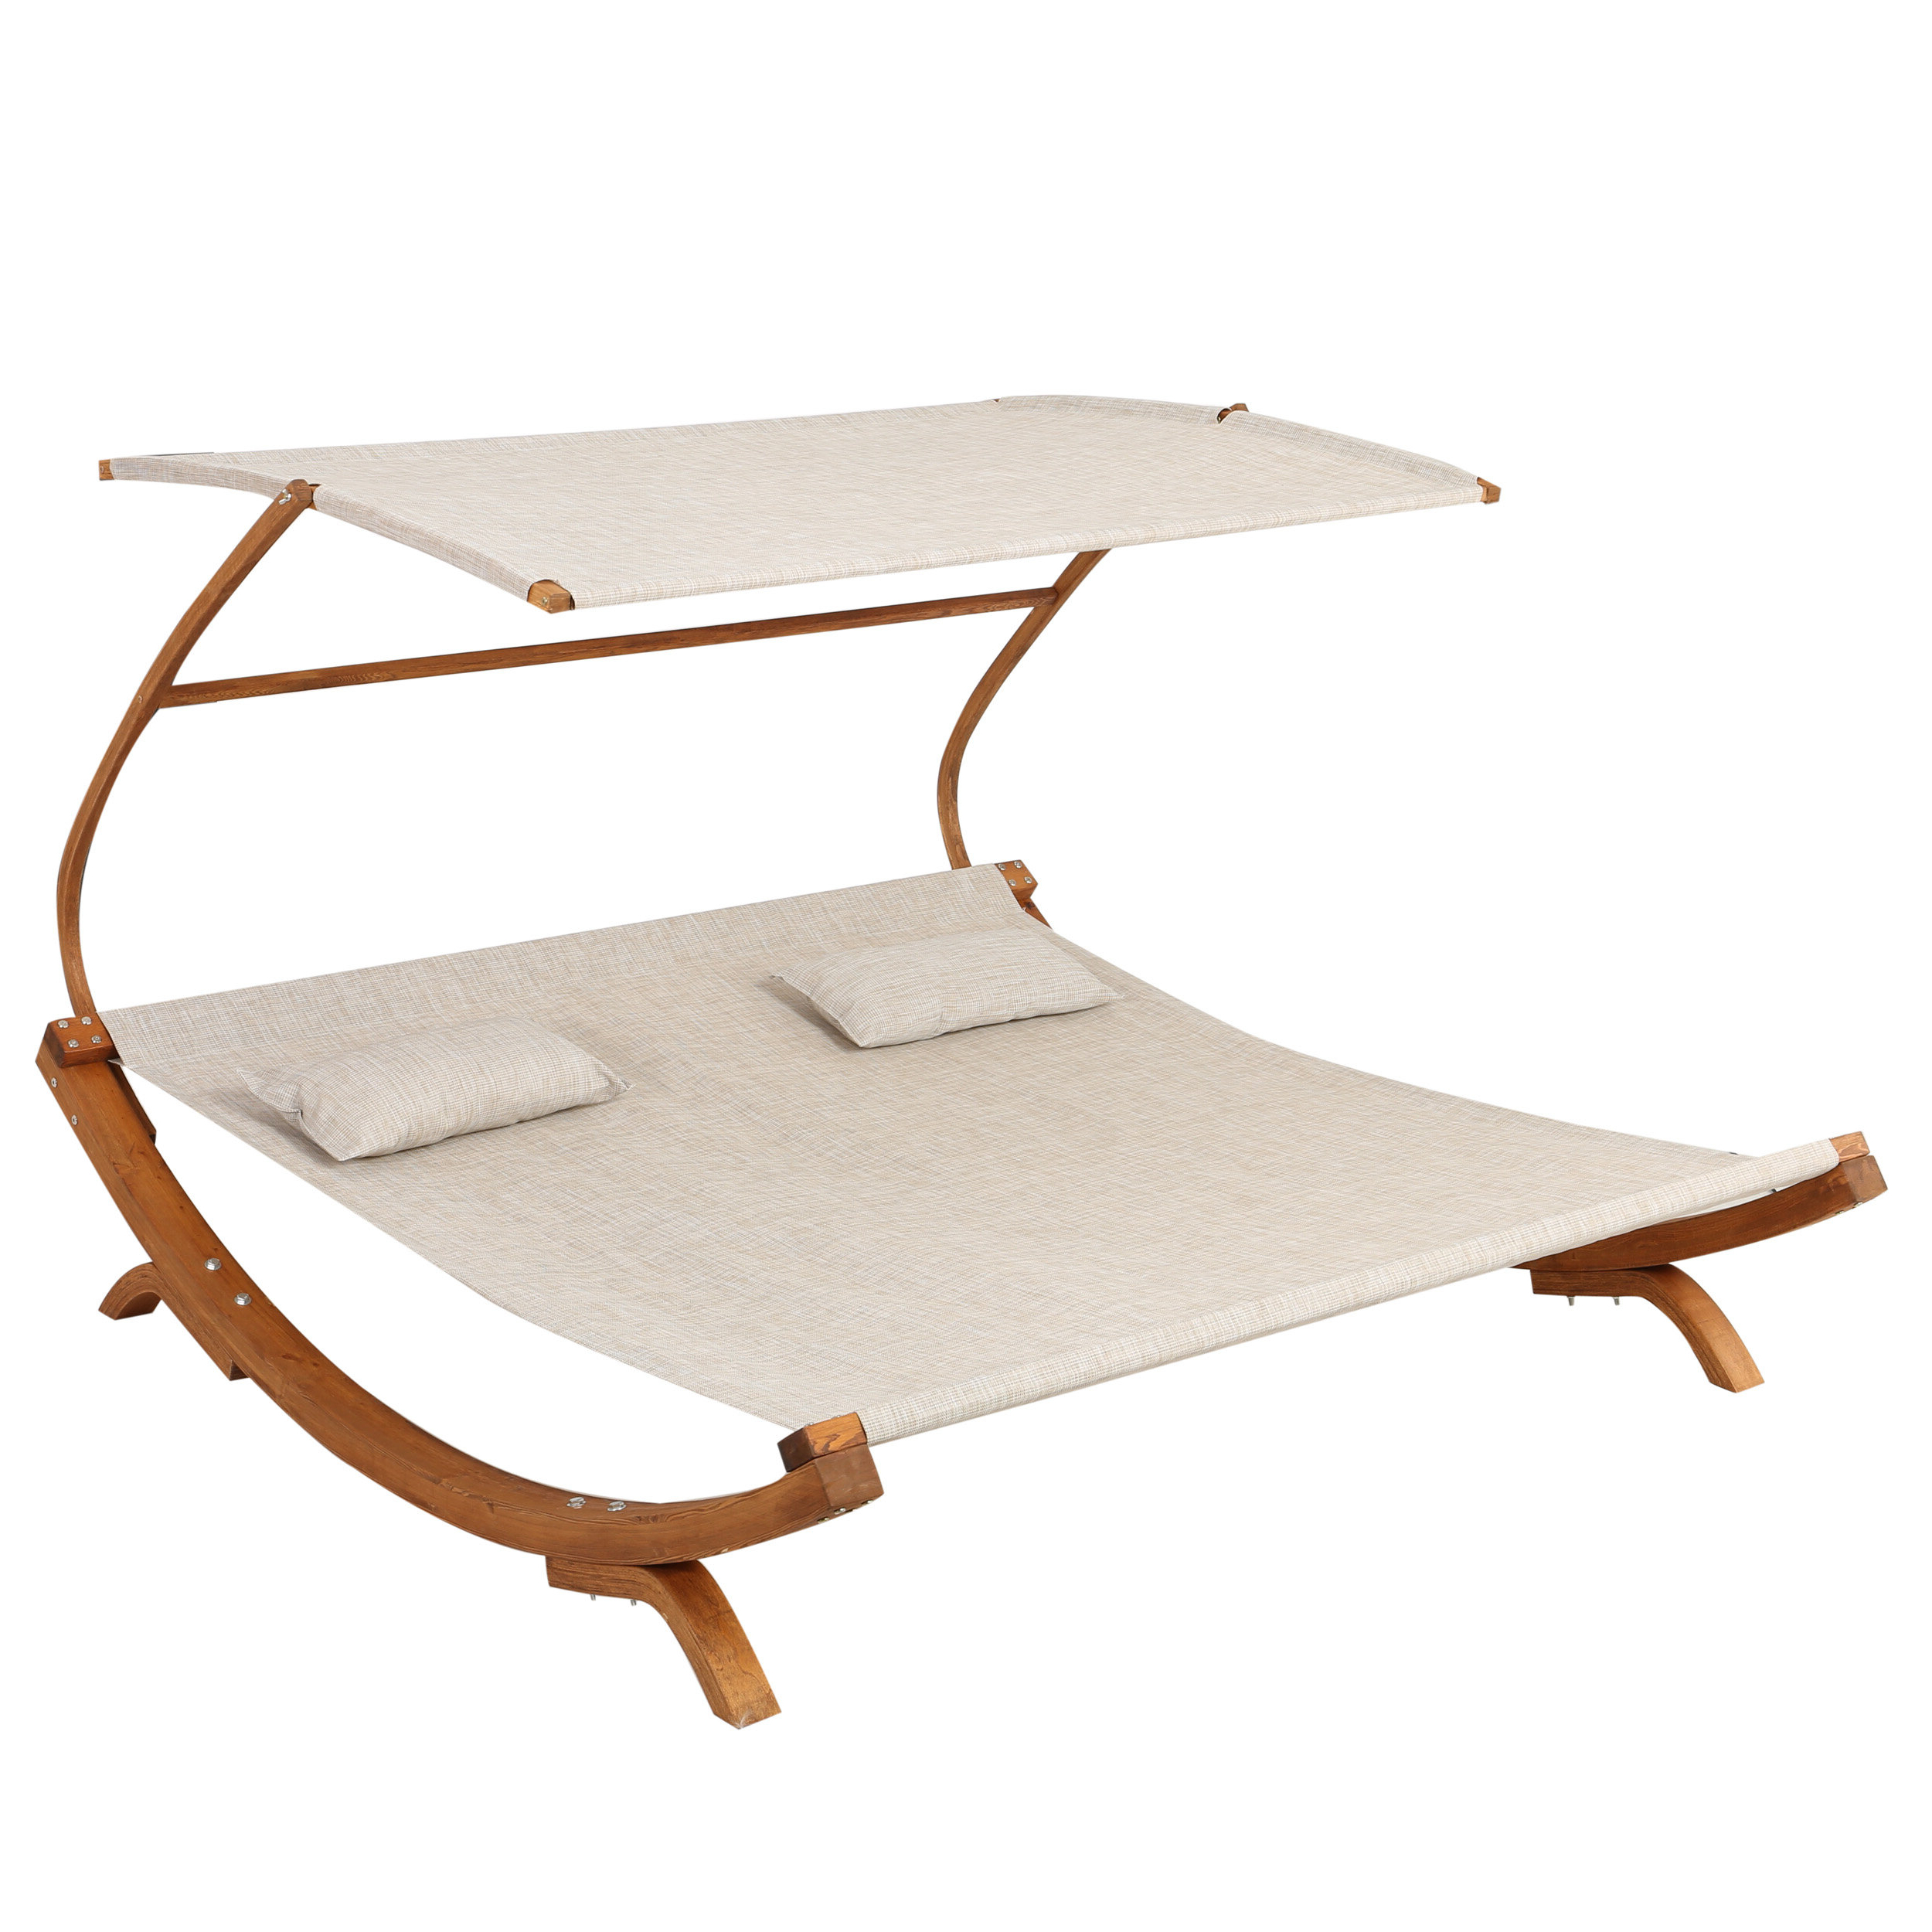 Newest Teak Chaise Loungers Throughout Tillis Double Teak Chaise Lounge With Cushion (Gallery 7 of 25)